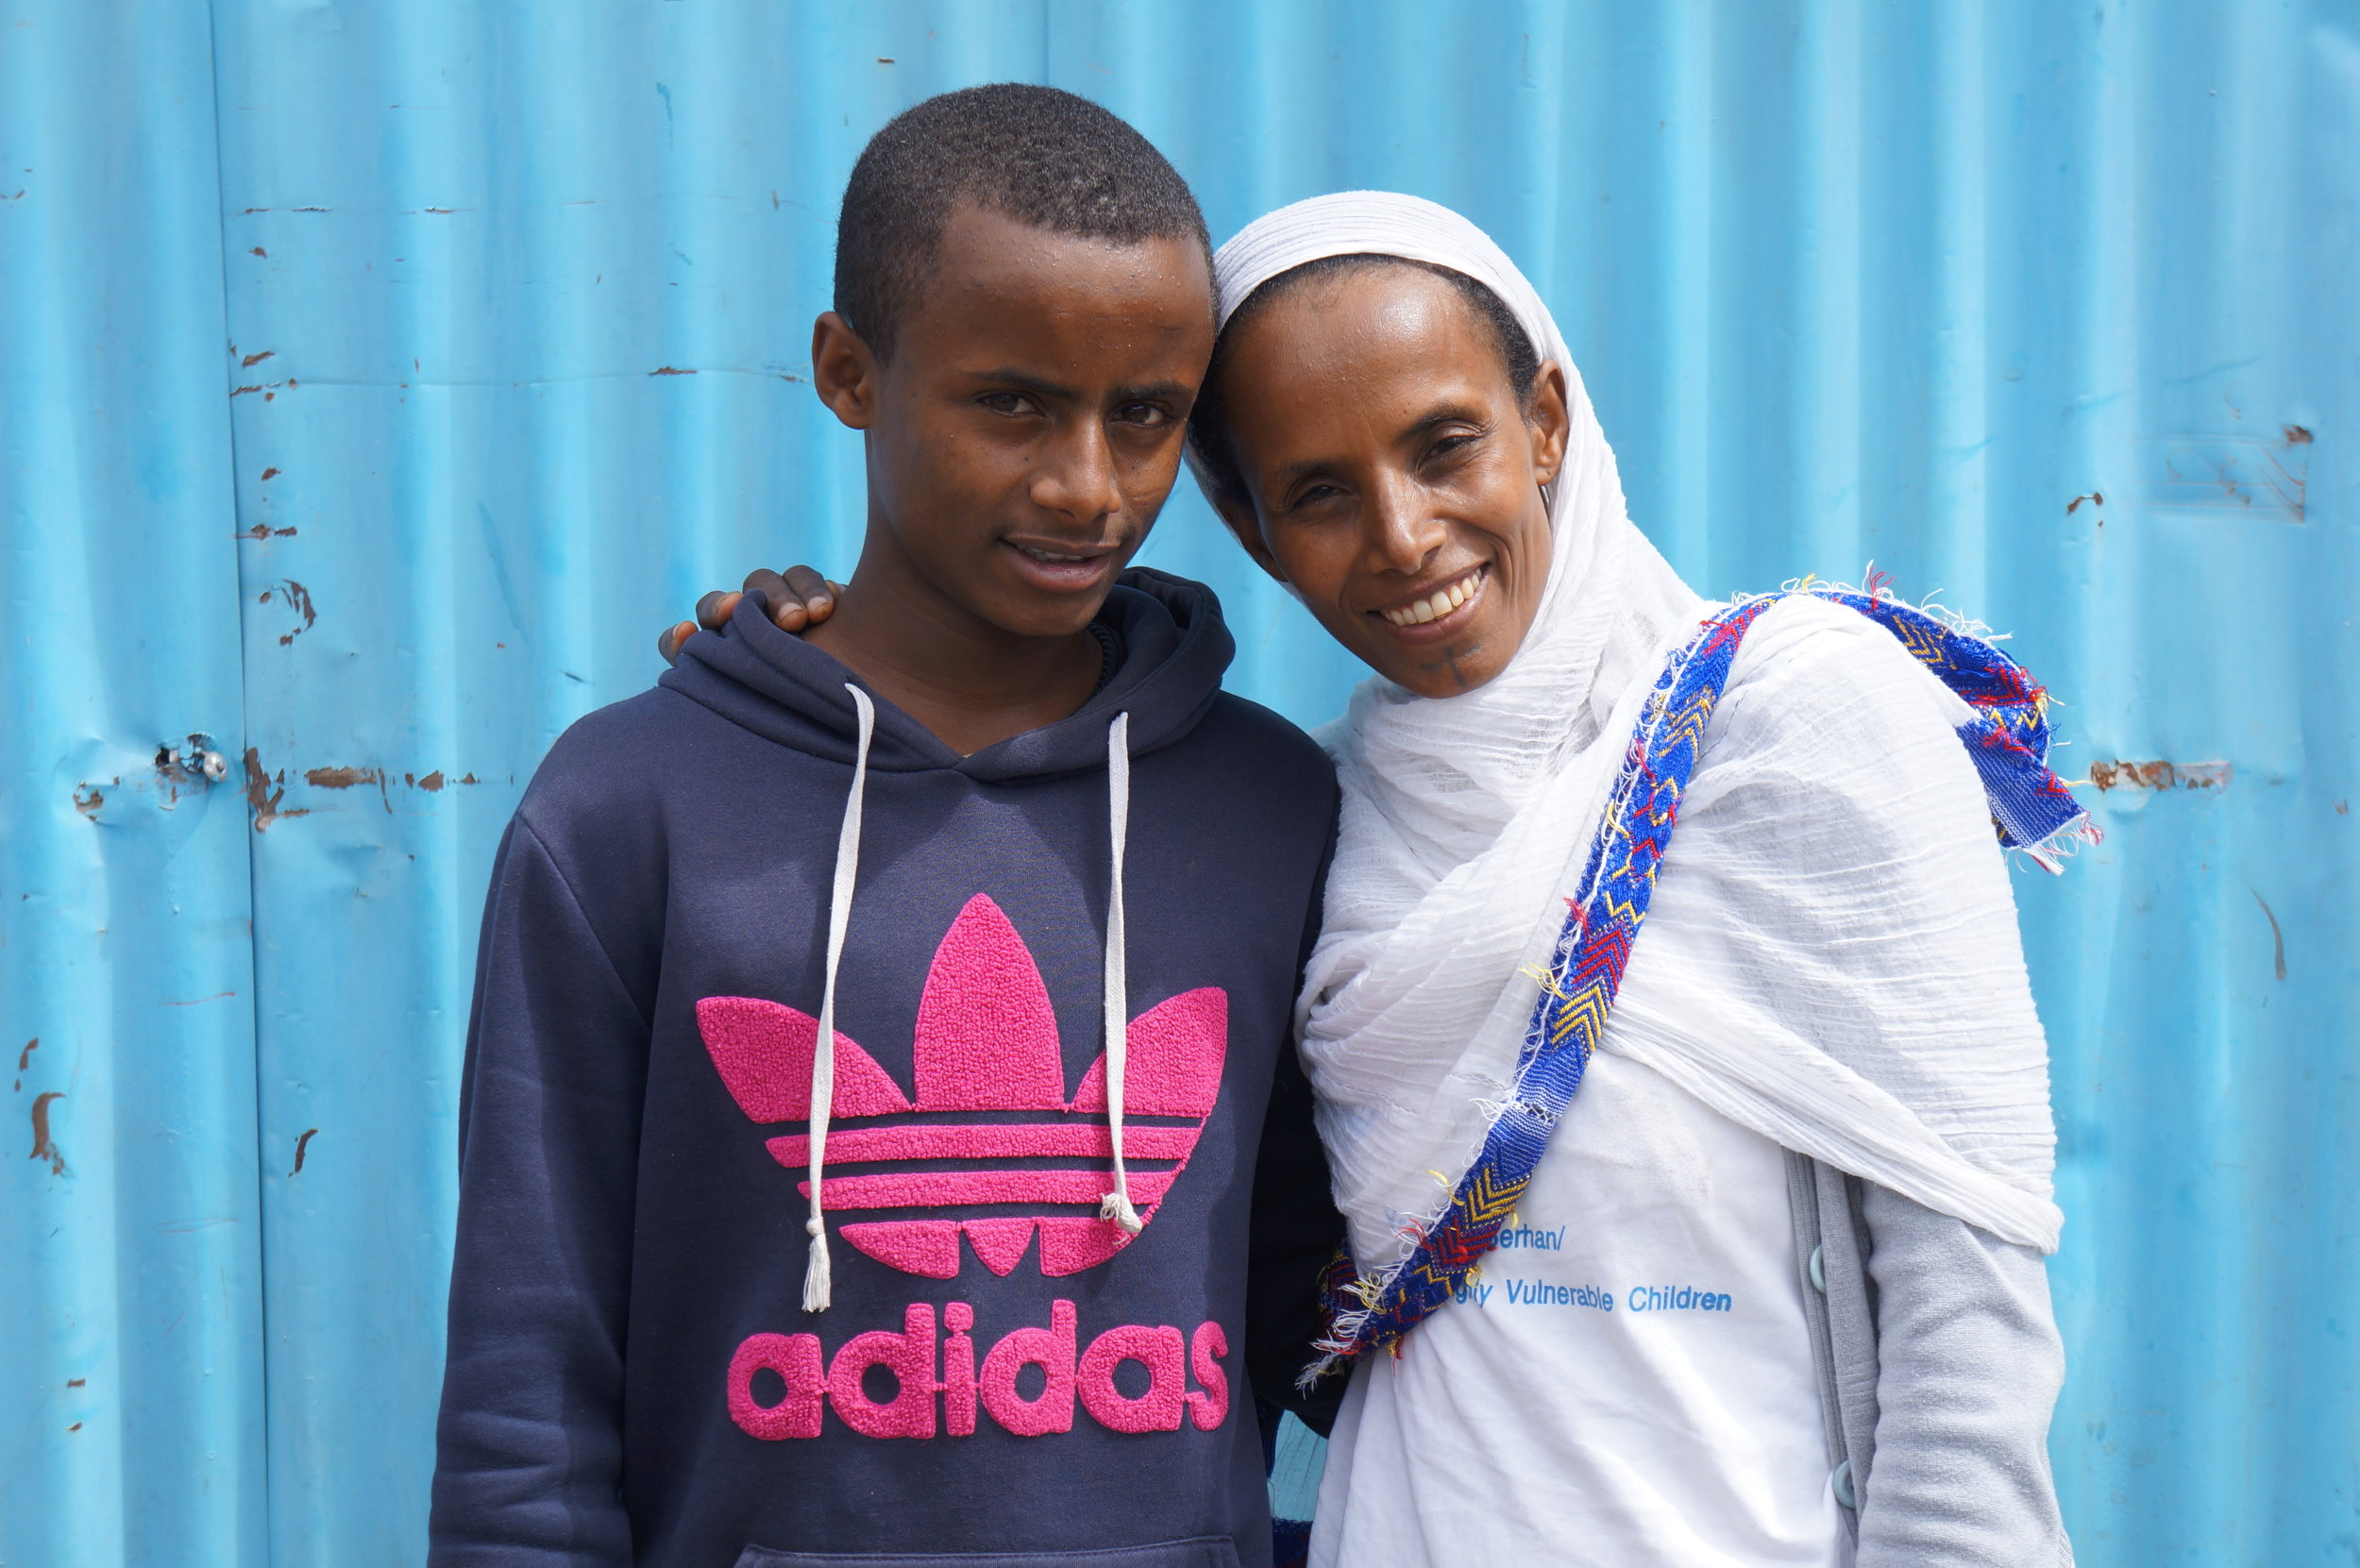 This is Yetemwork and her son Mikey. Being in savings groups and being able to save up and take loans, has made her able to start her own business, and inspire her children to do the same.  Read her fascinating story here.